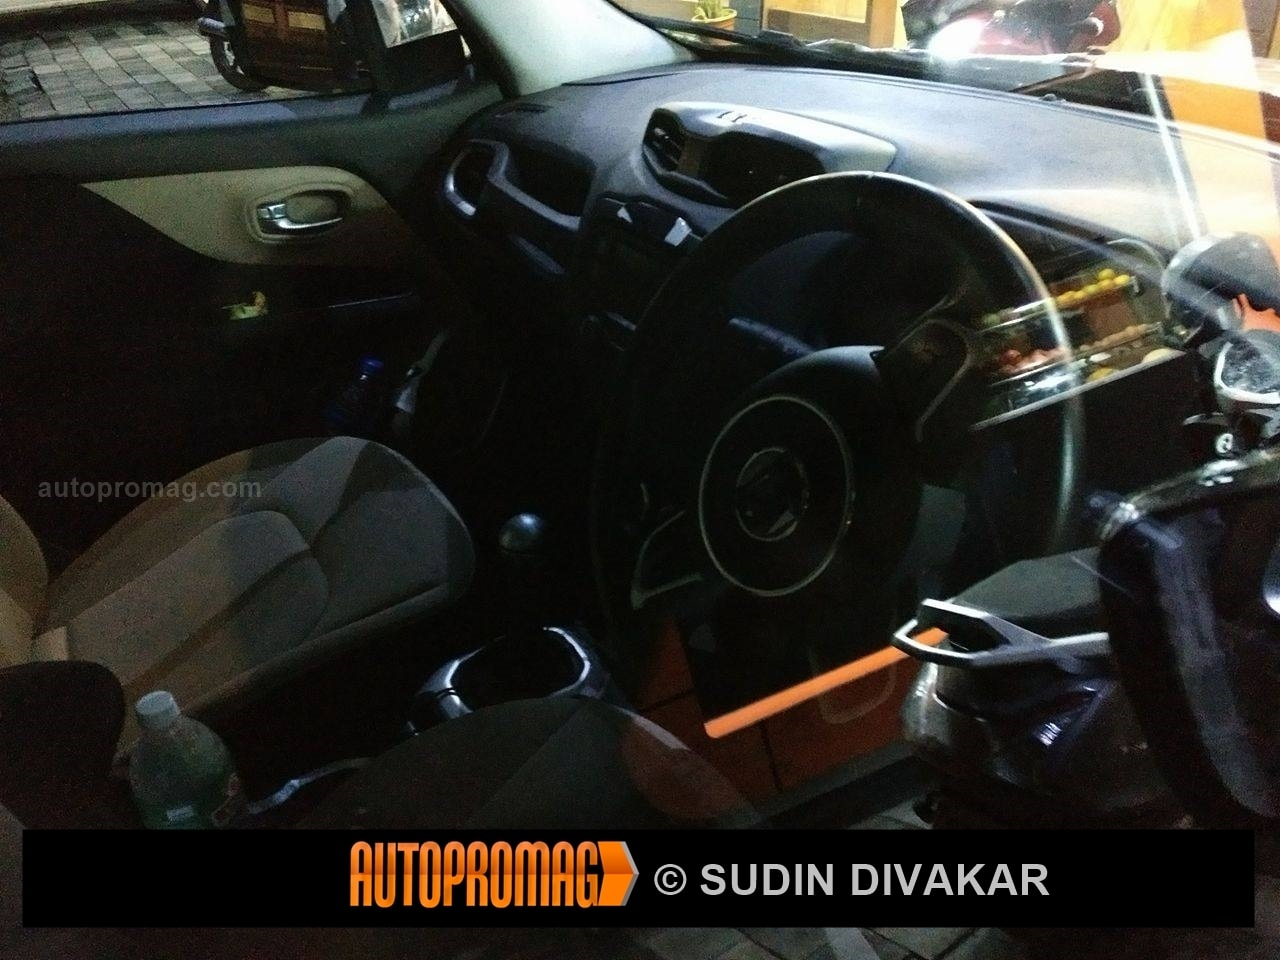 Jeep Renegade Interior spied